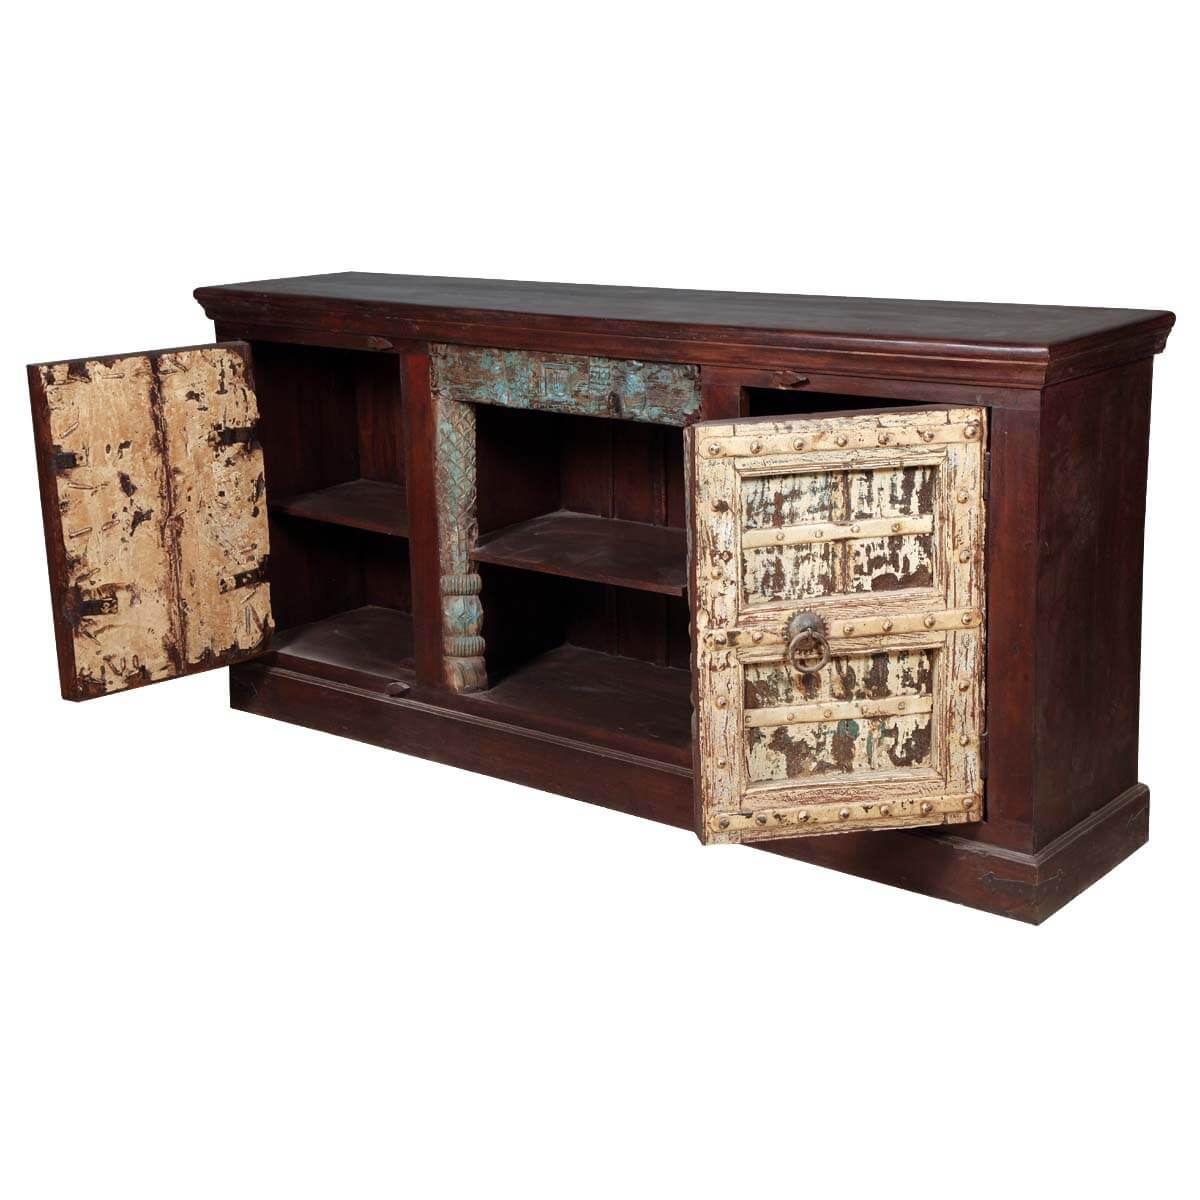 Nottingham Distressed Reclaimed Wood TV Media Console Cabinet